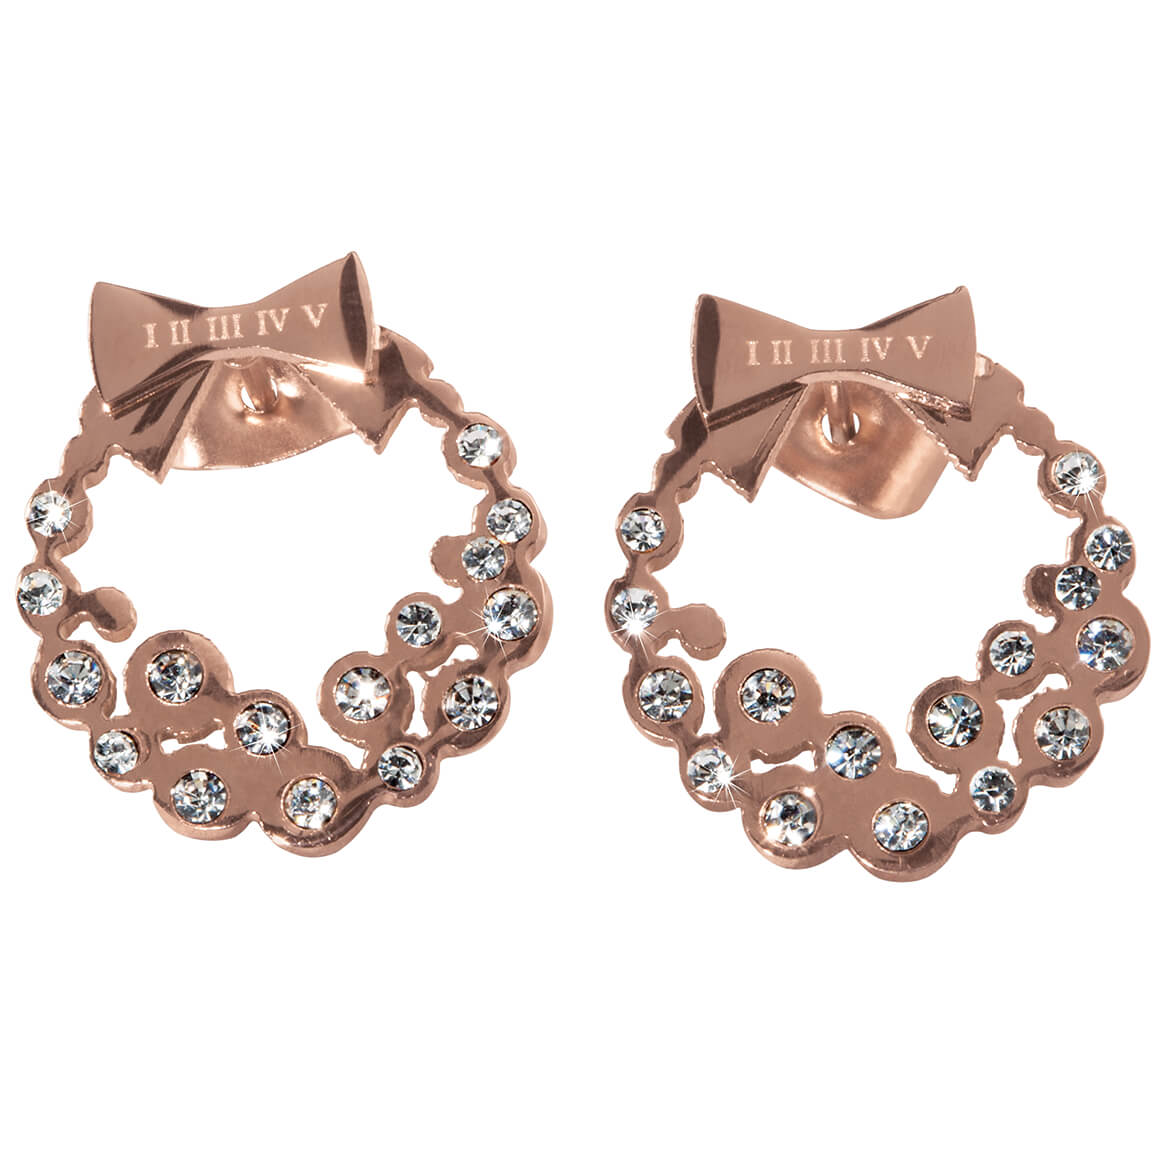 Diamond Look Holiday Wreath Earrings